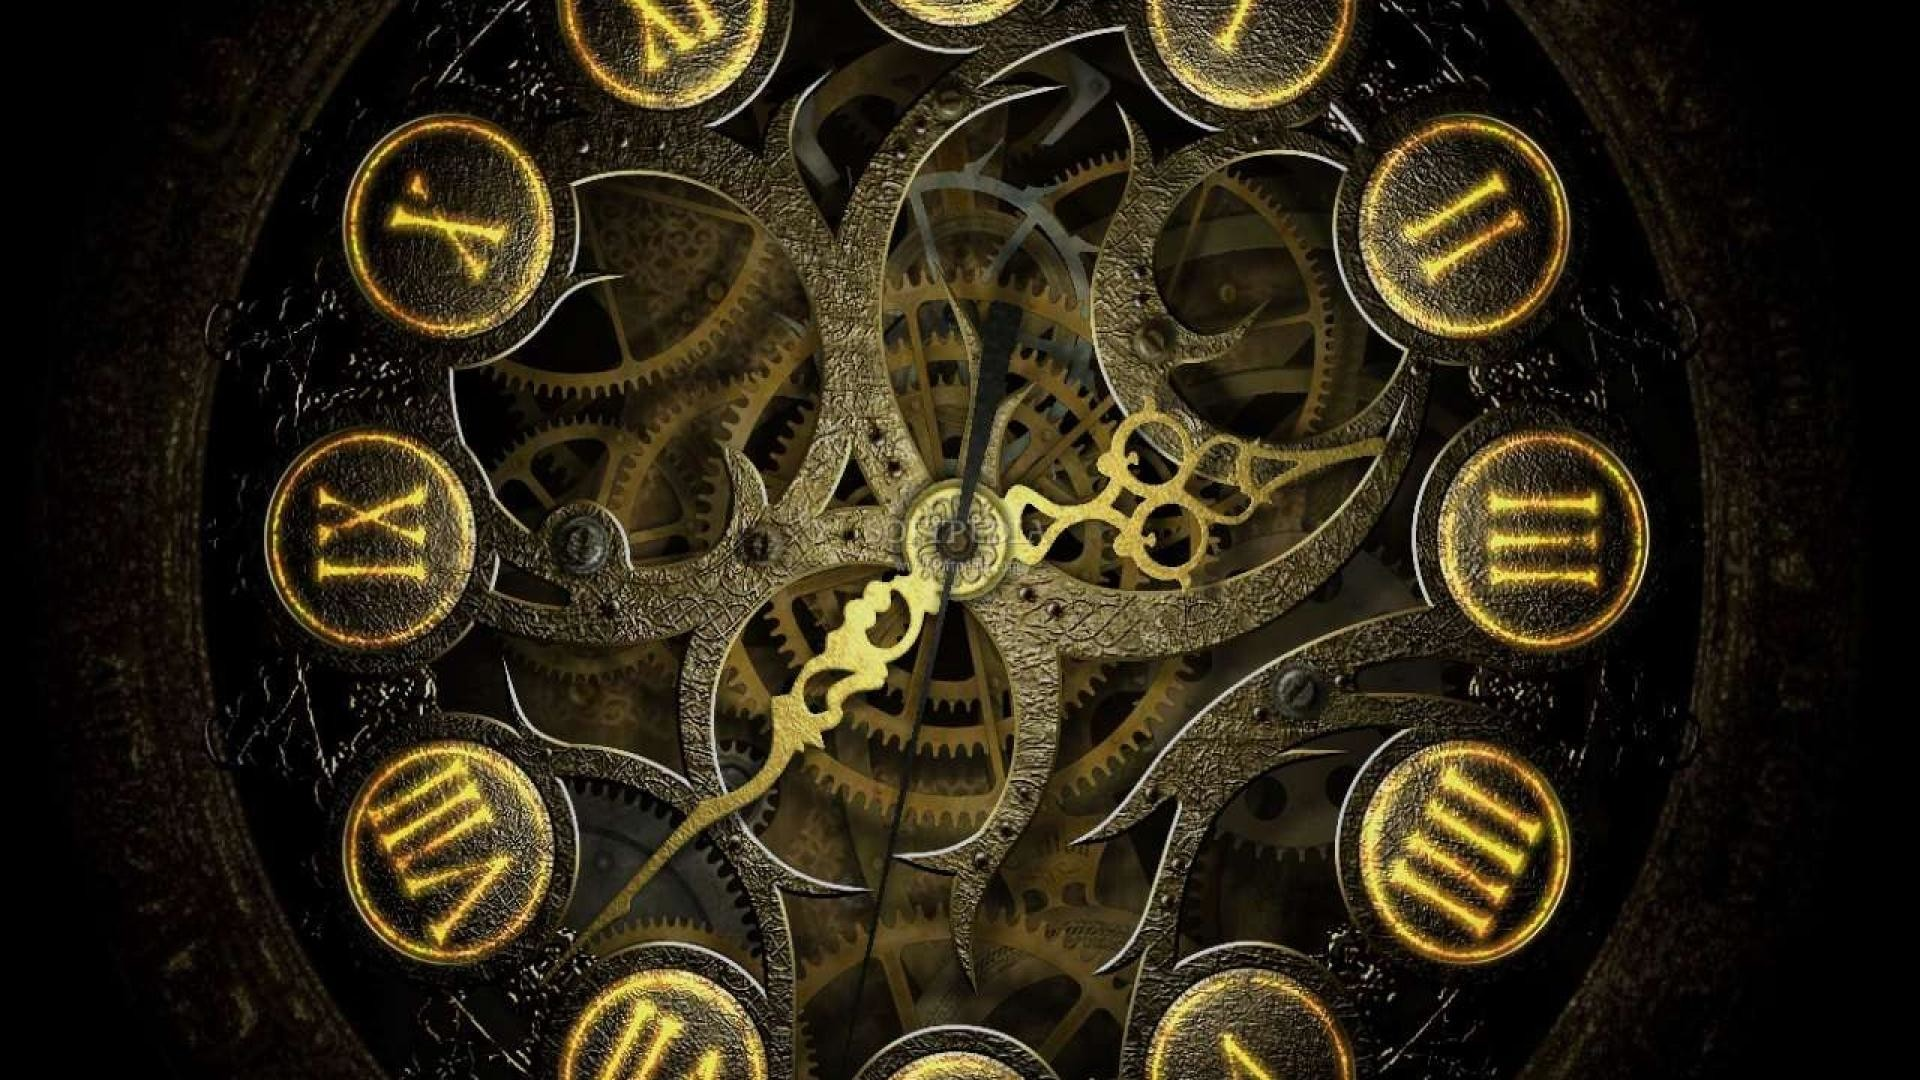 Steampunk Wallpaper Hd 74 Images